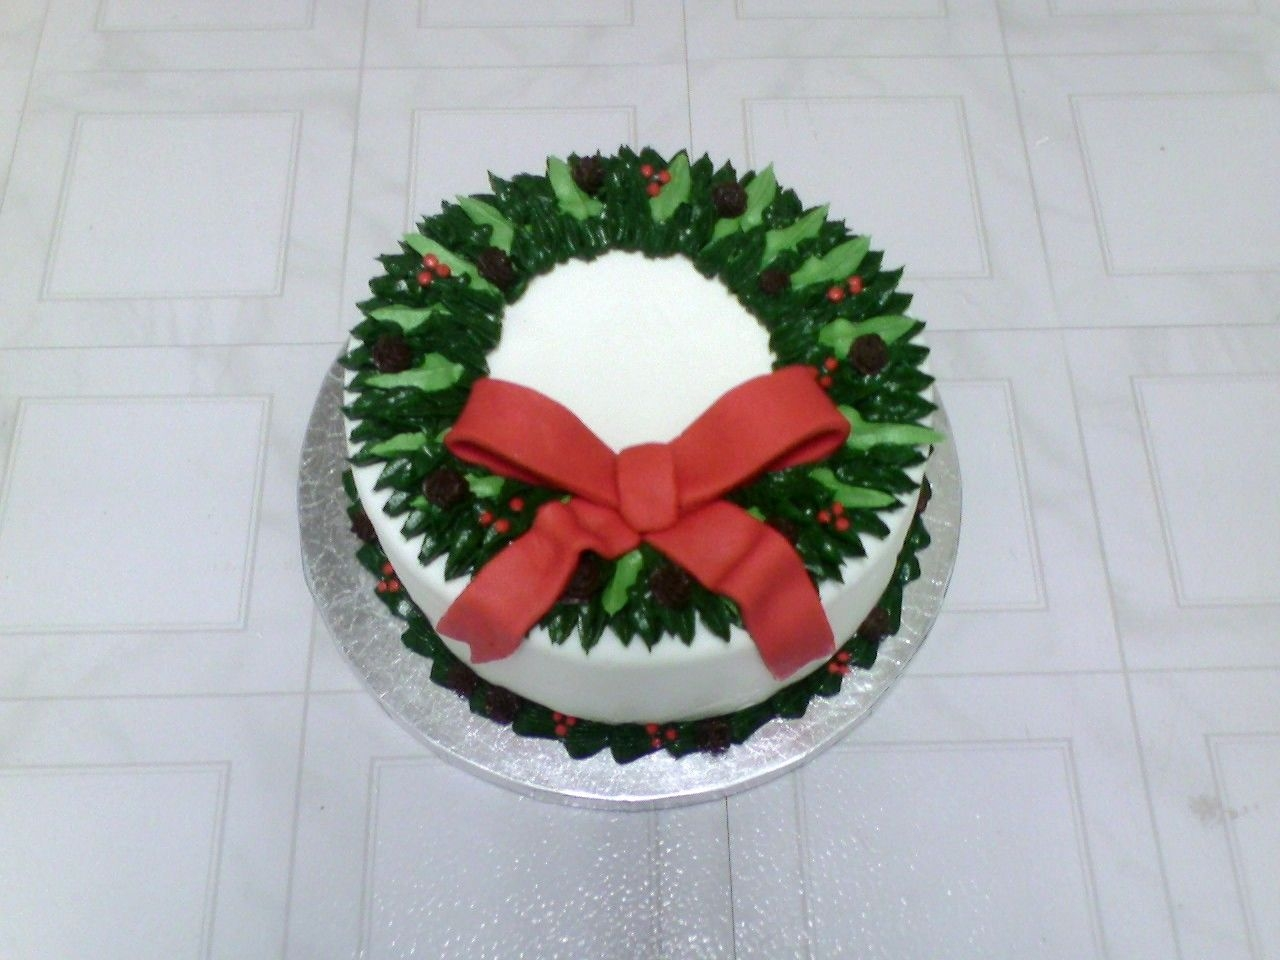 Holiday Wreath Cake White MMF w/buttercream greenery, pine cones and holly, fondant bow. I would change a few things next time.